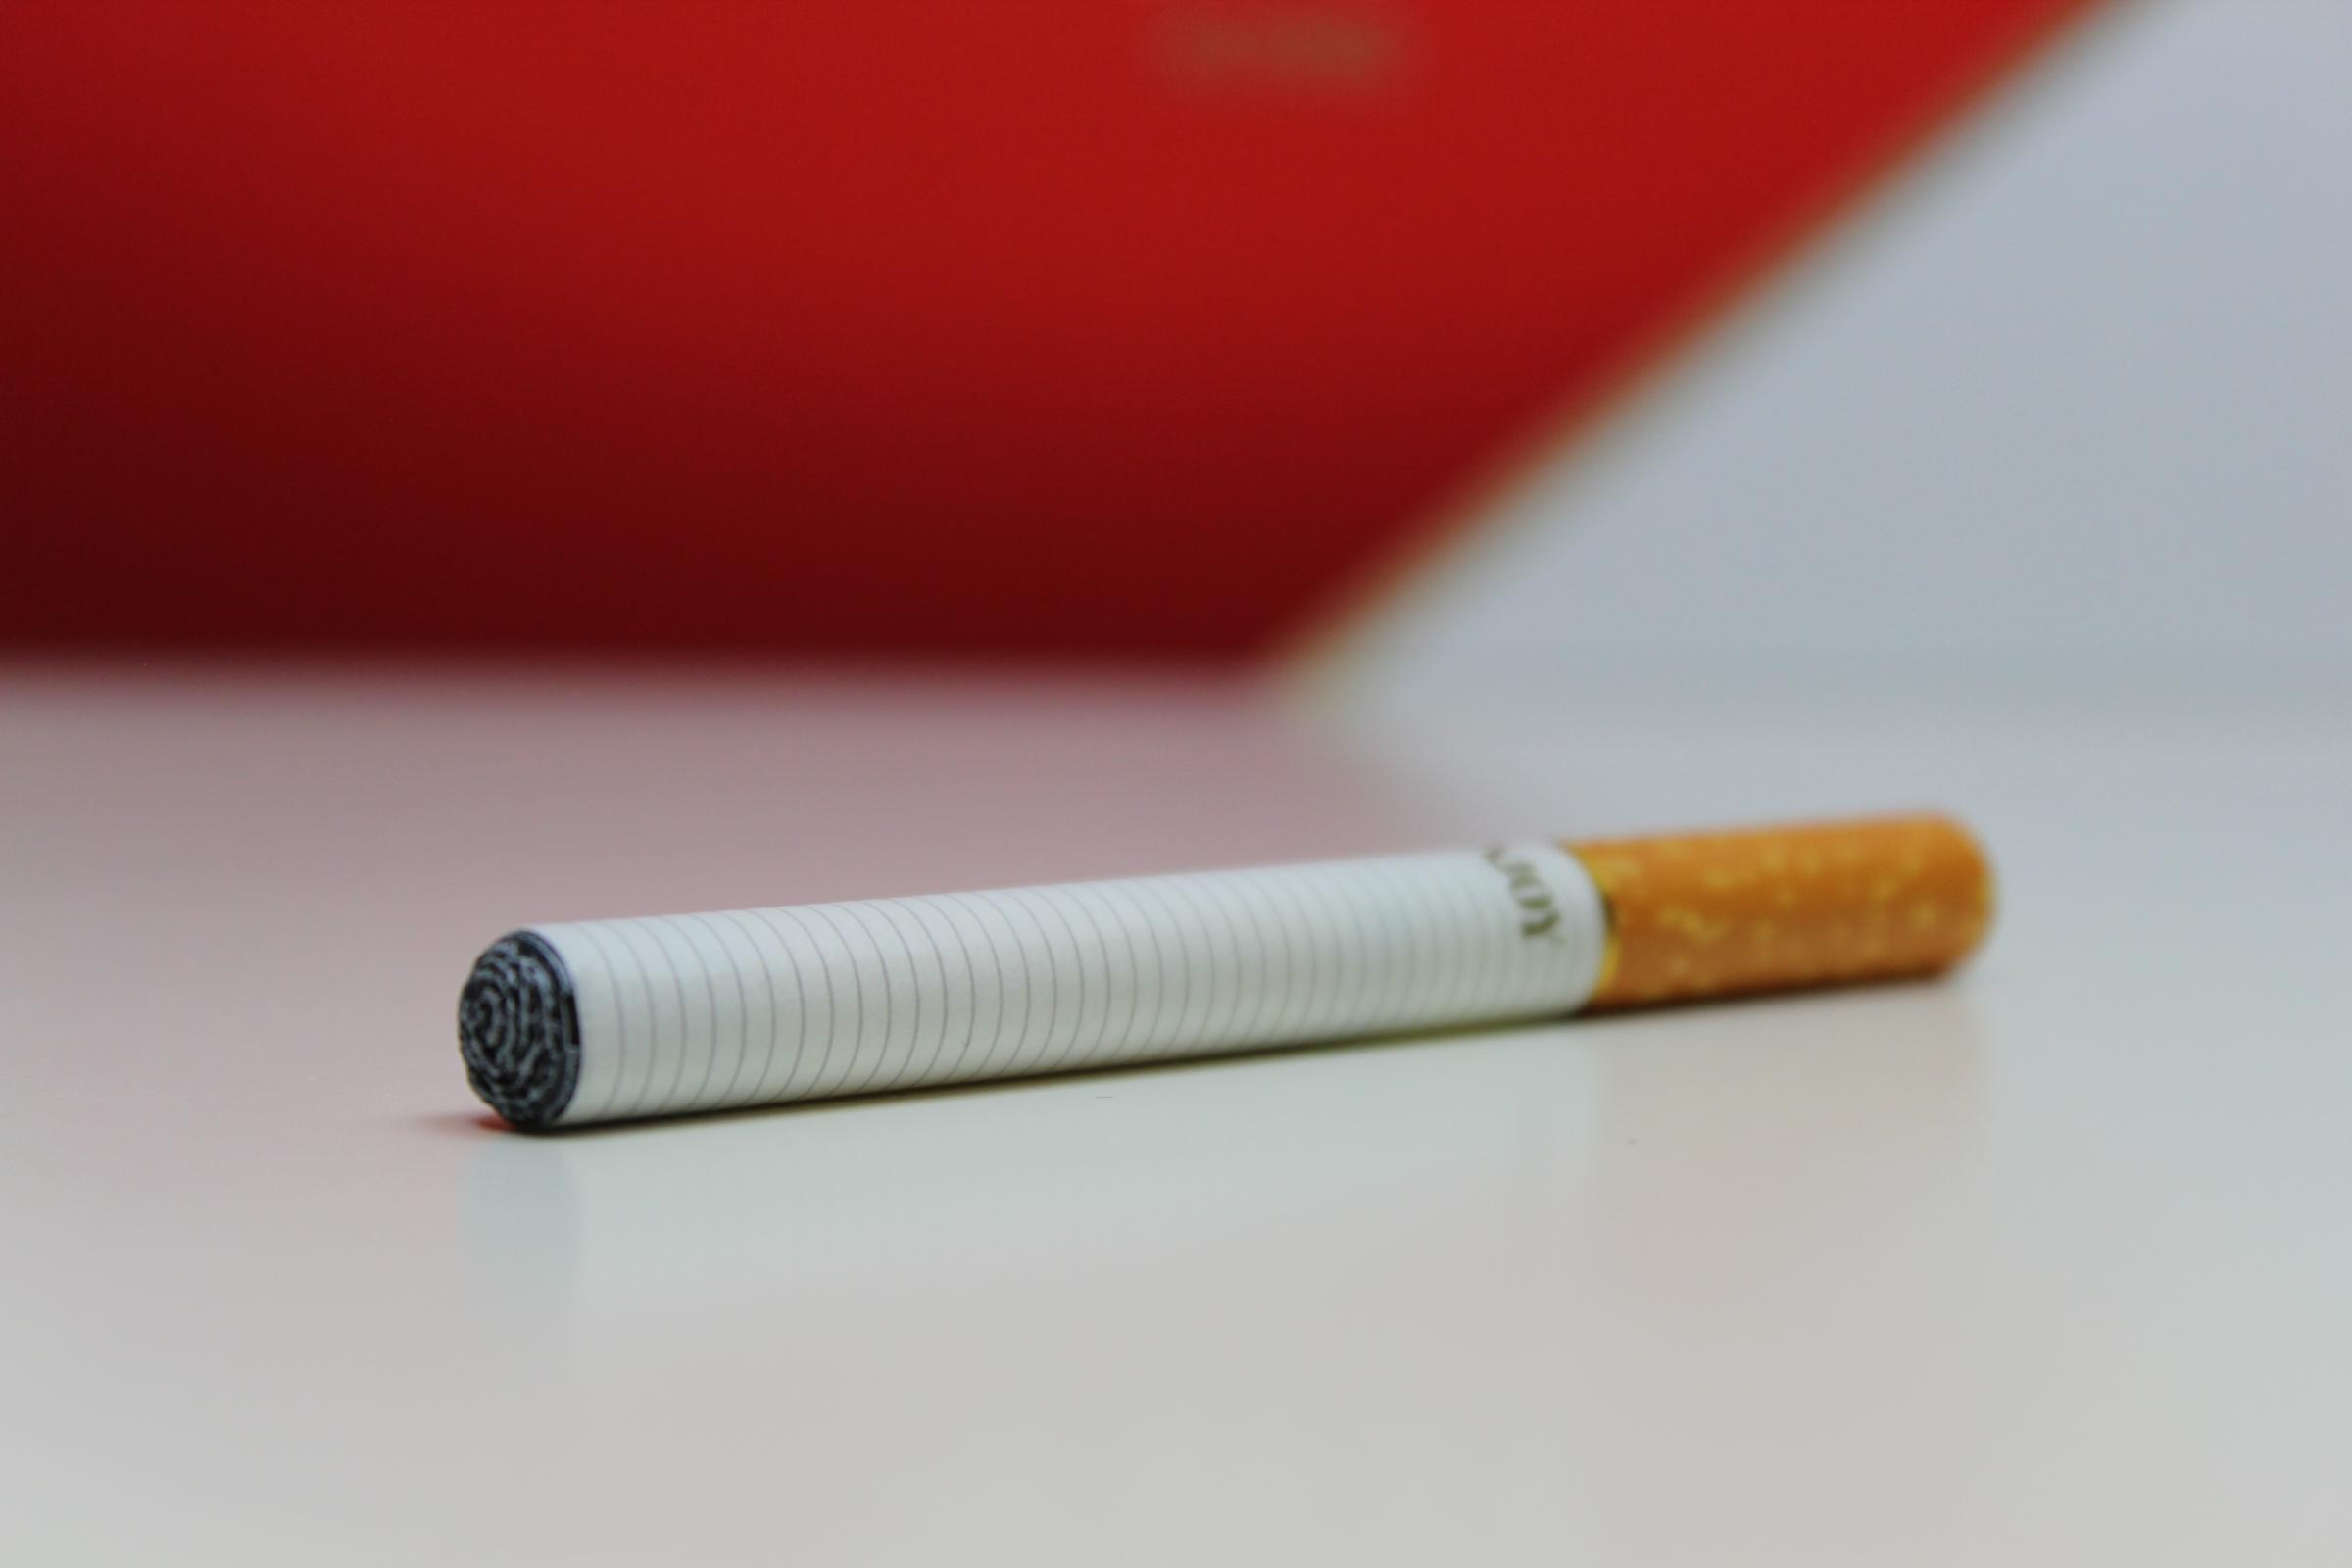 City stores sell fake cigarettes